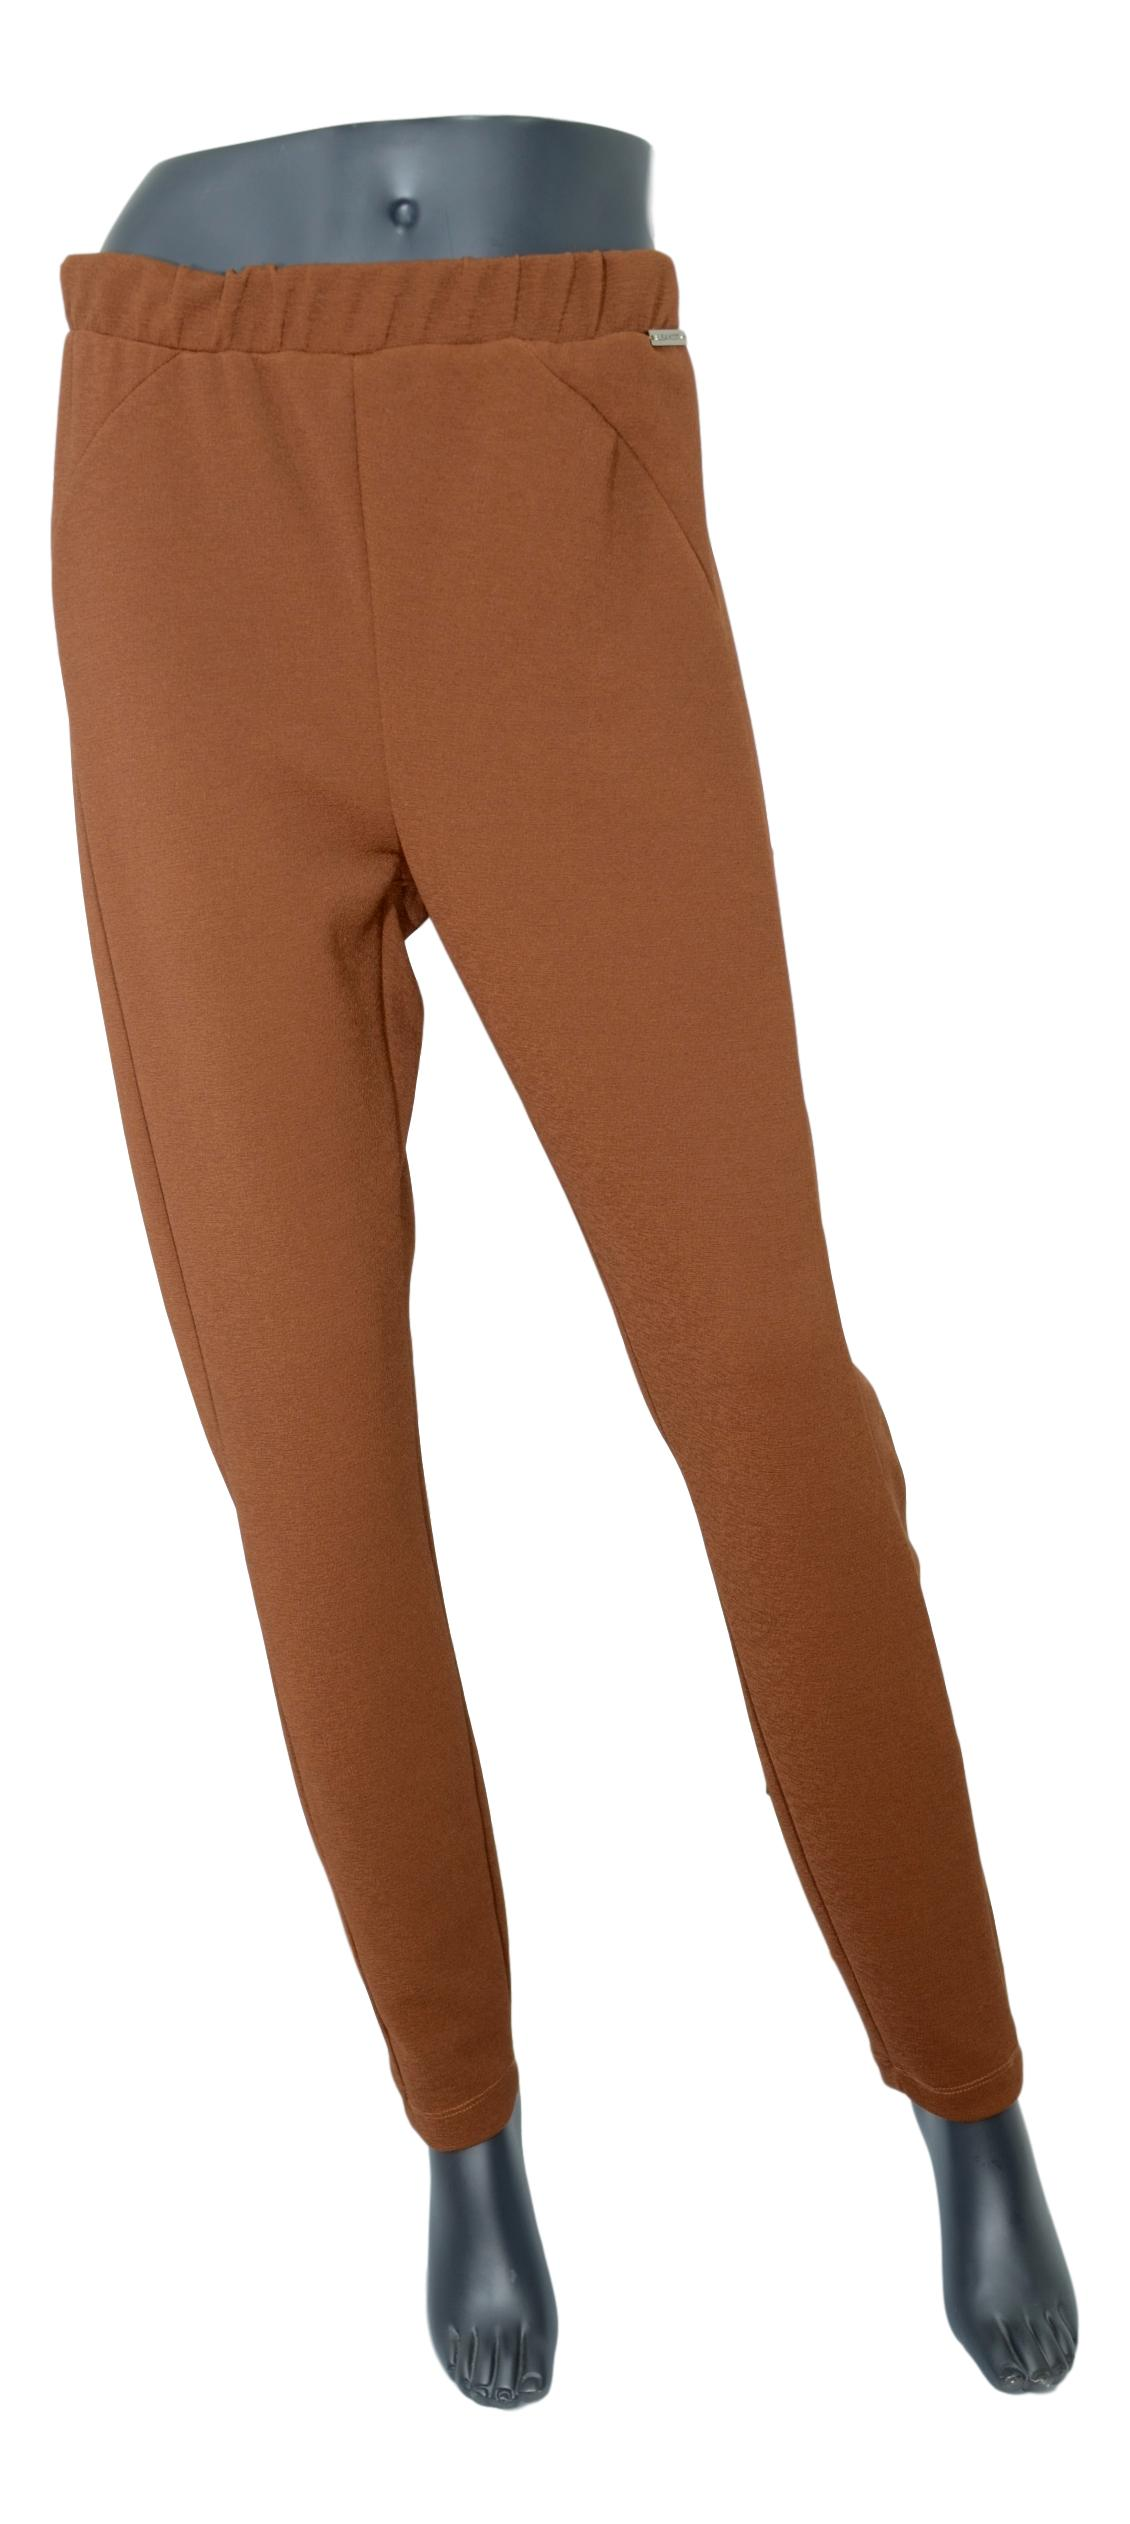 LISA KOTT PANTALONE DONNA CURVY STYLE 9P1012 COLORE NOCCIOLA MADE IN ITALY